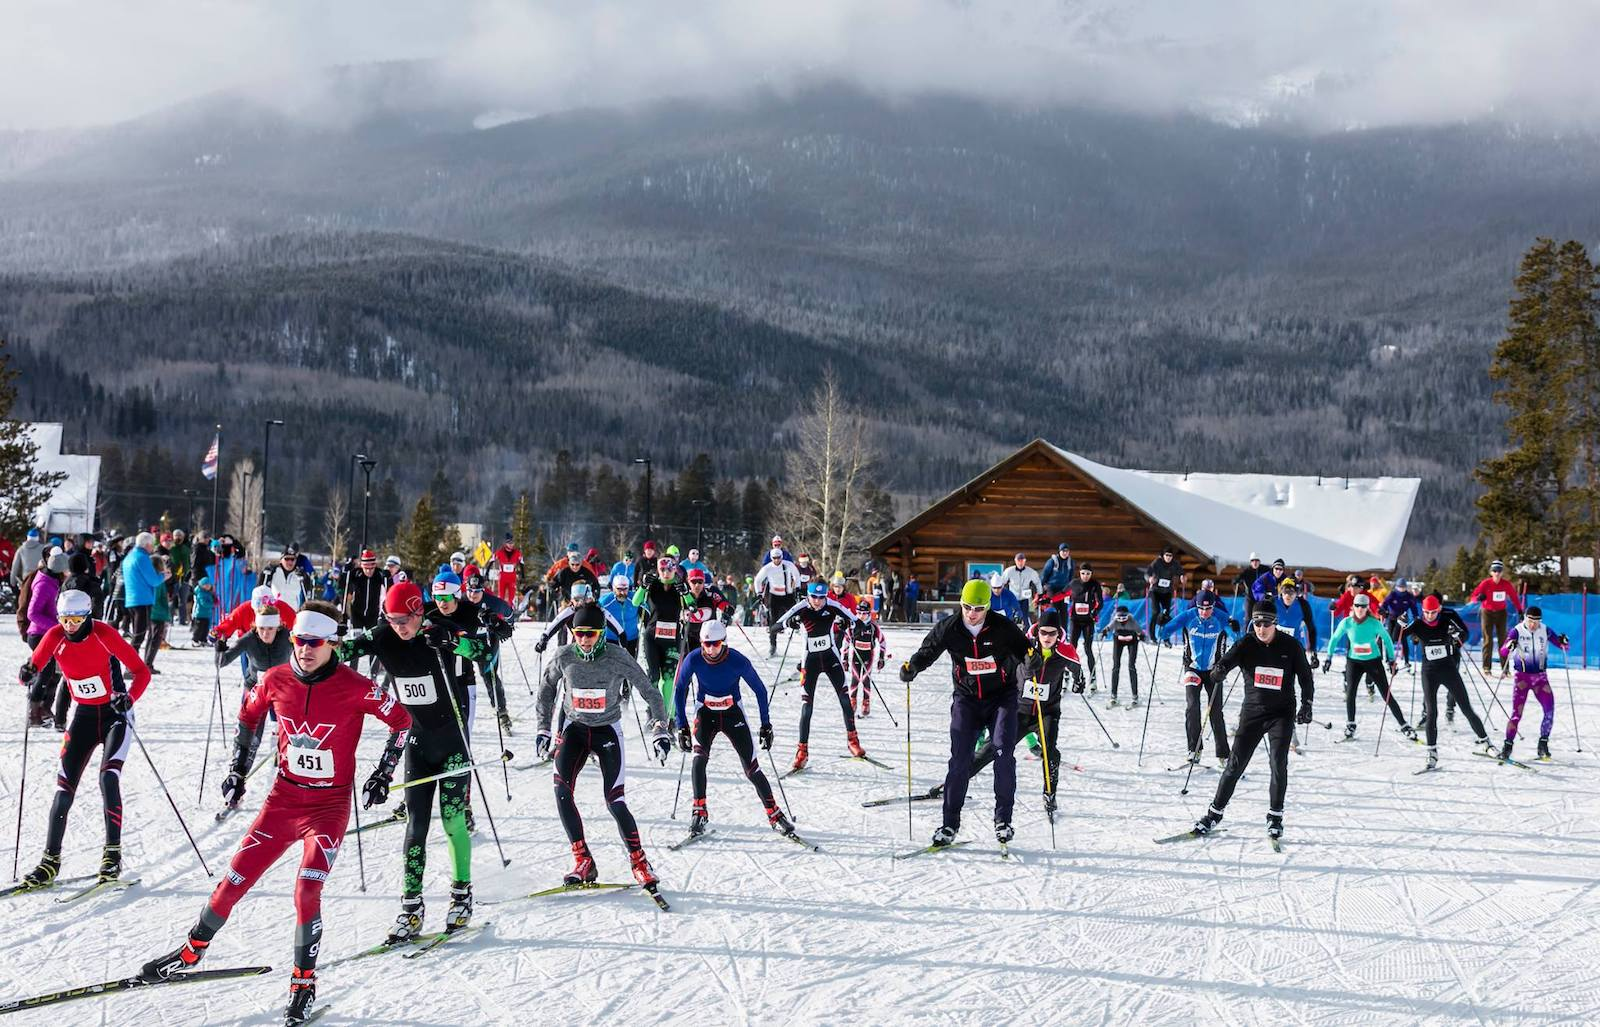 Image of skiers at the Gold Rush Nordic Races in Frisco, Colorado